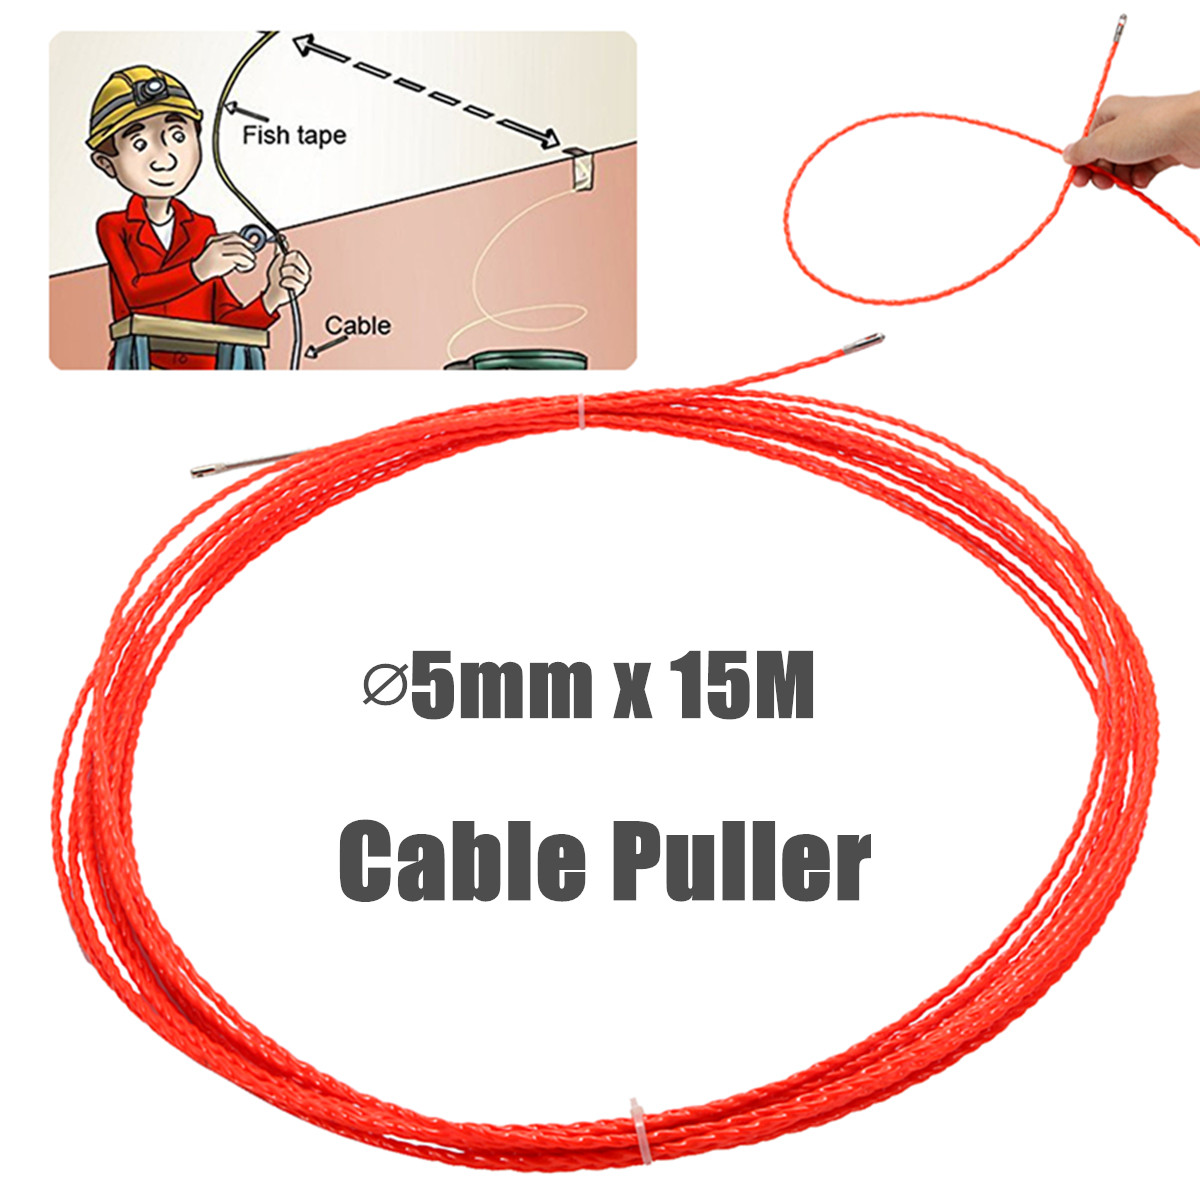 US $9.58 48% OFF|5mm 15M Professional Cable Push Puller Rodder Reel on